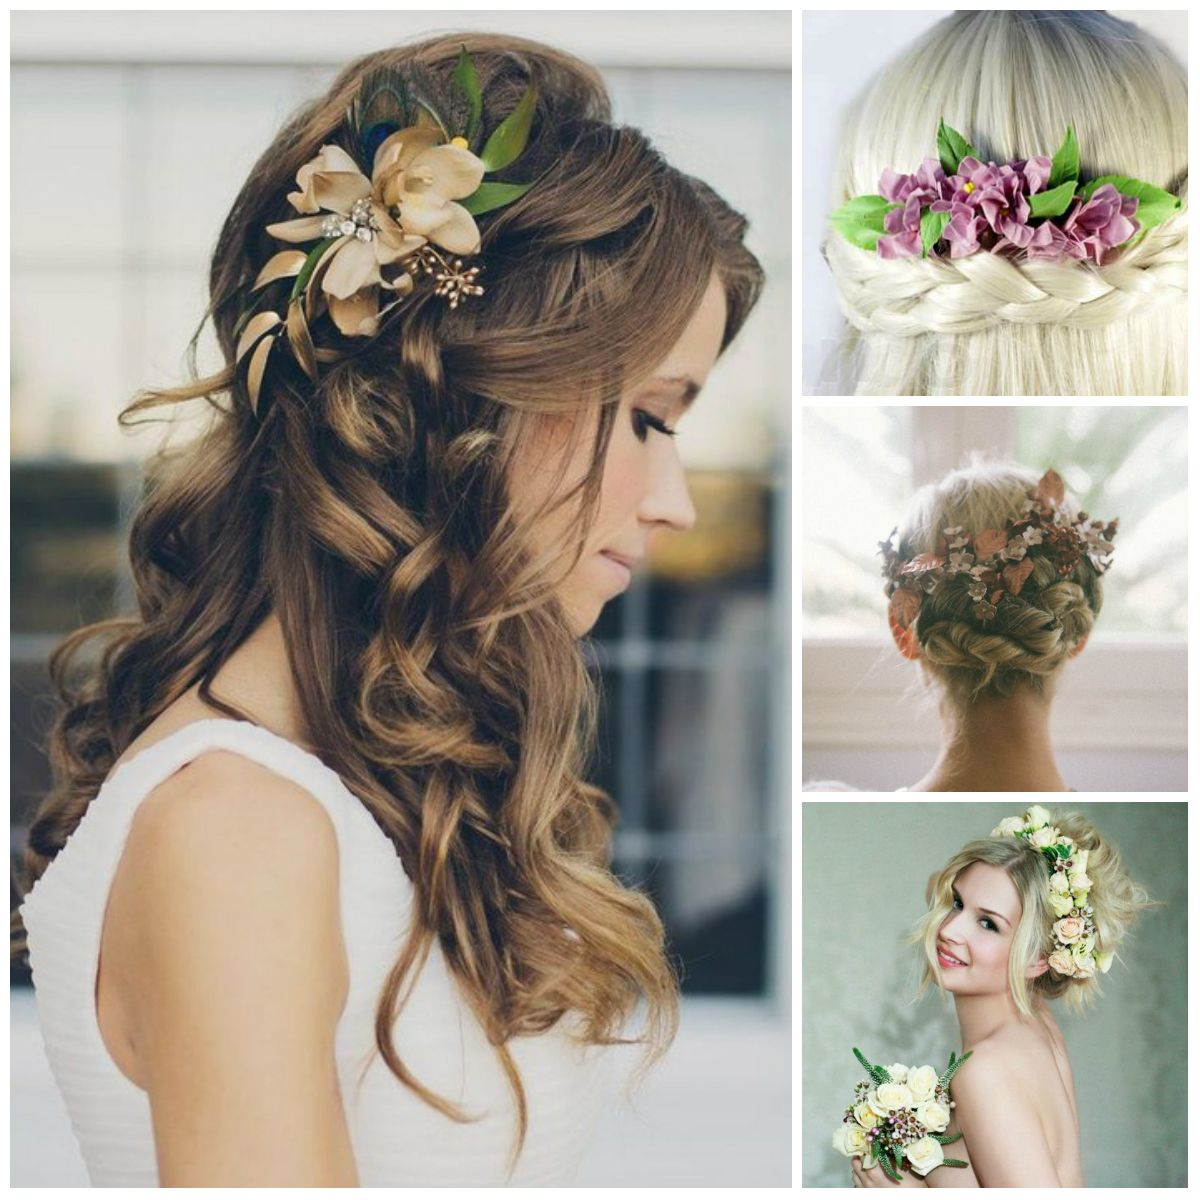 Flowers in the Hair Creating a Gentle Bridal Image